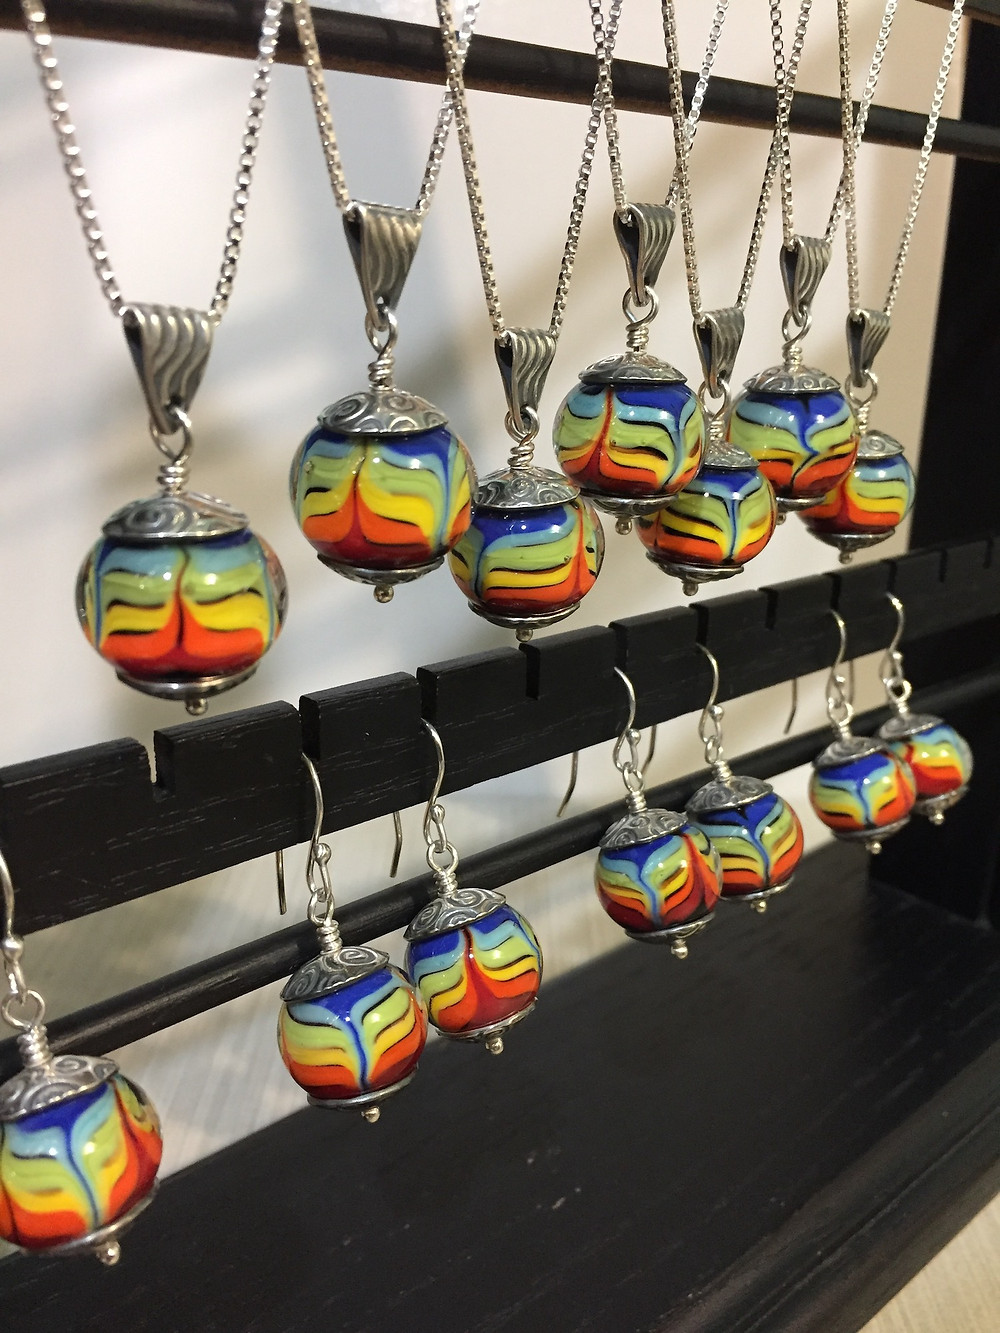 handmade lampwork glass necklaces and earrings